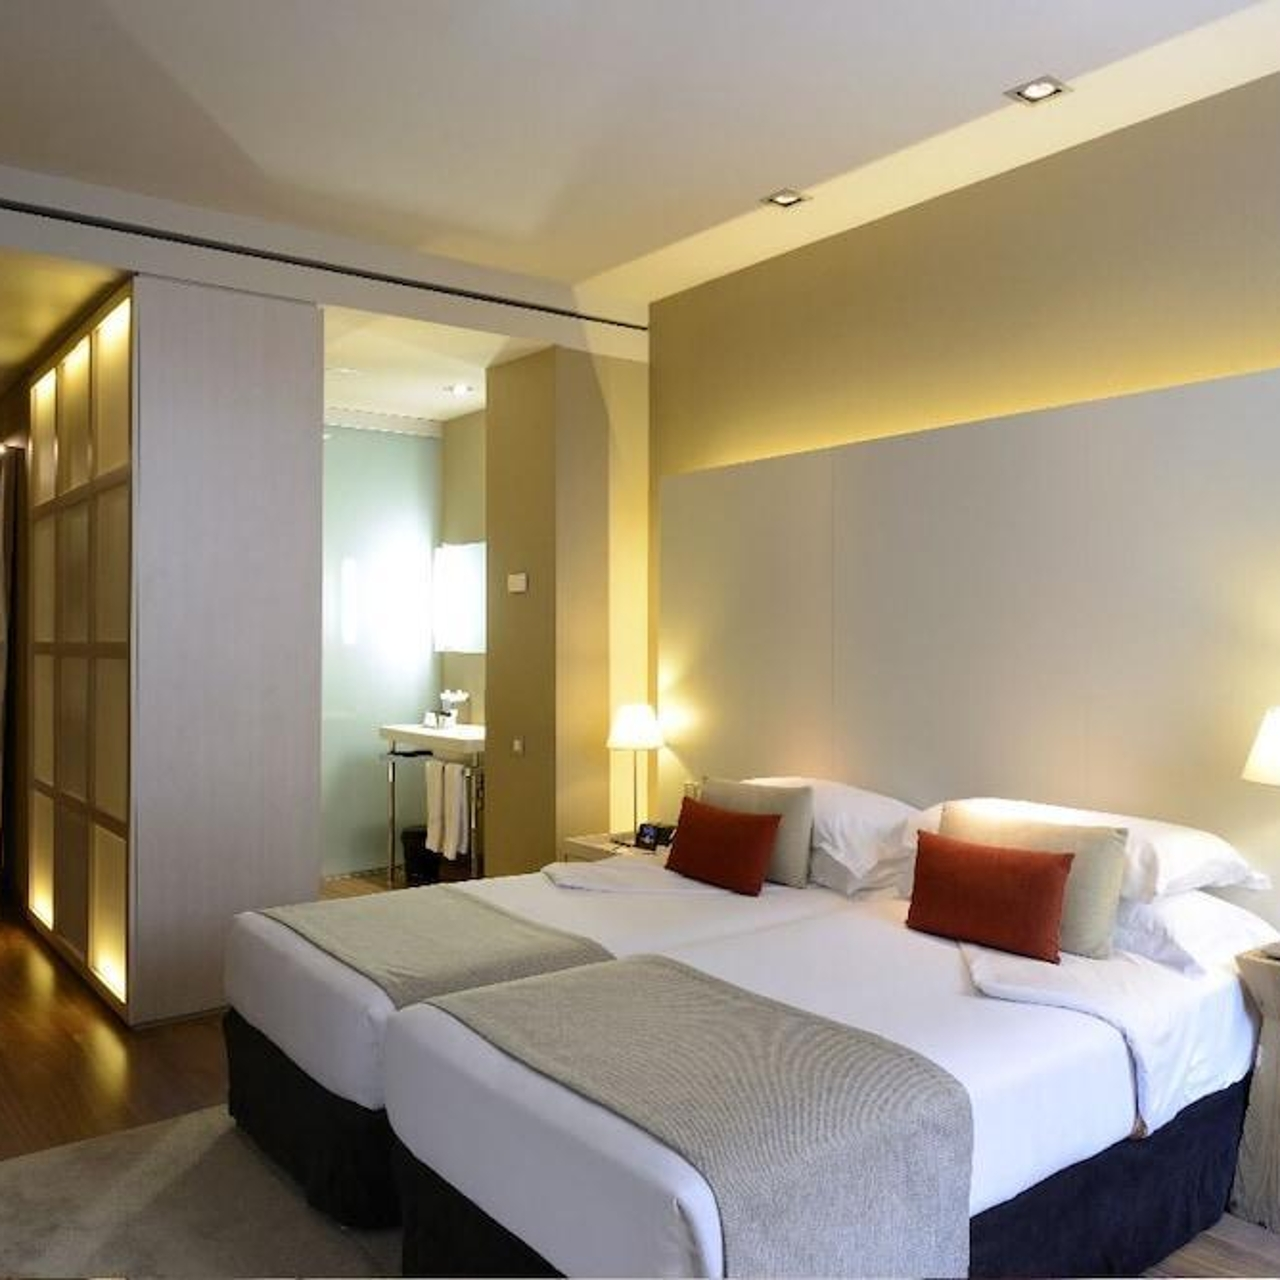 Grand Hotel Central Barcelona Grand Hotel Central - Small Luxury Hotels Of The World Spain At Hrs With Free Services